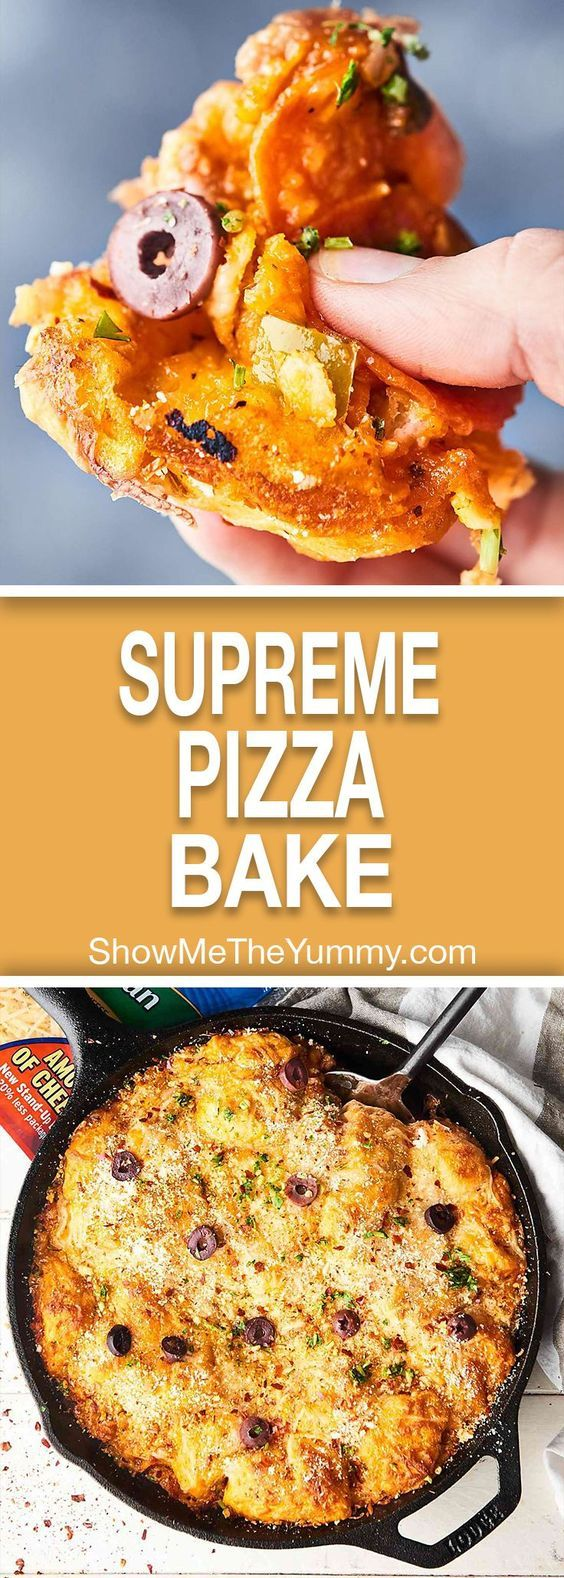 This Supreme Pizza Bake is easy, cheesy perfection! Refrigerated biscuit dough is mixed with pizza sauce, THREE kinds of cheese, sausage, pepperoni, veggies, and gets baked until golden! showmetheyummy.com #pizza #casserole